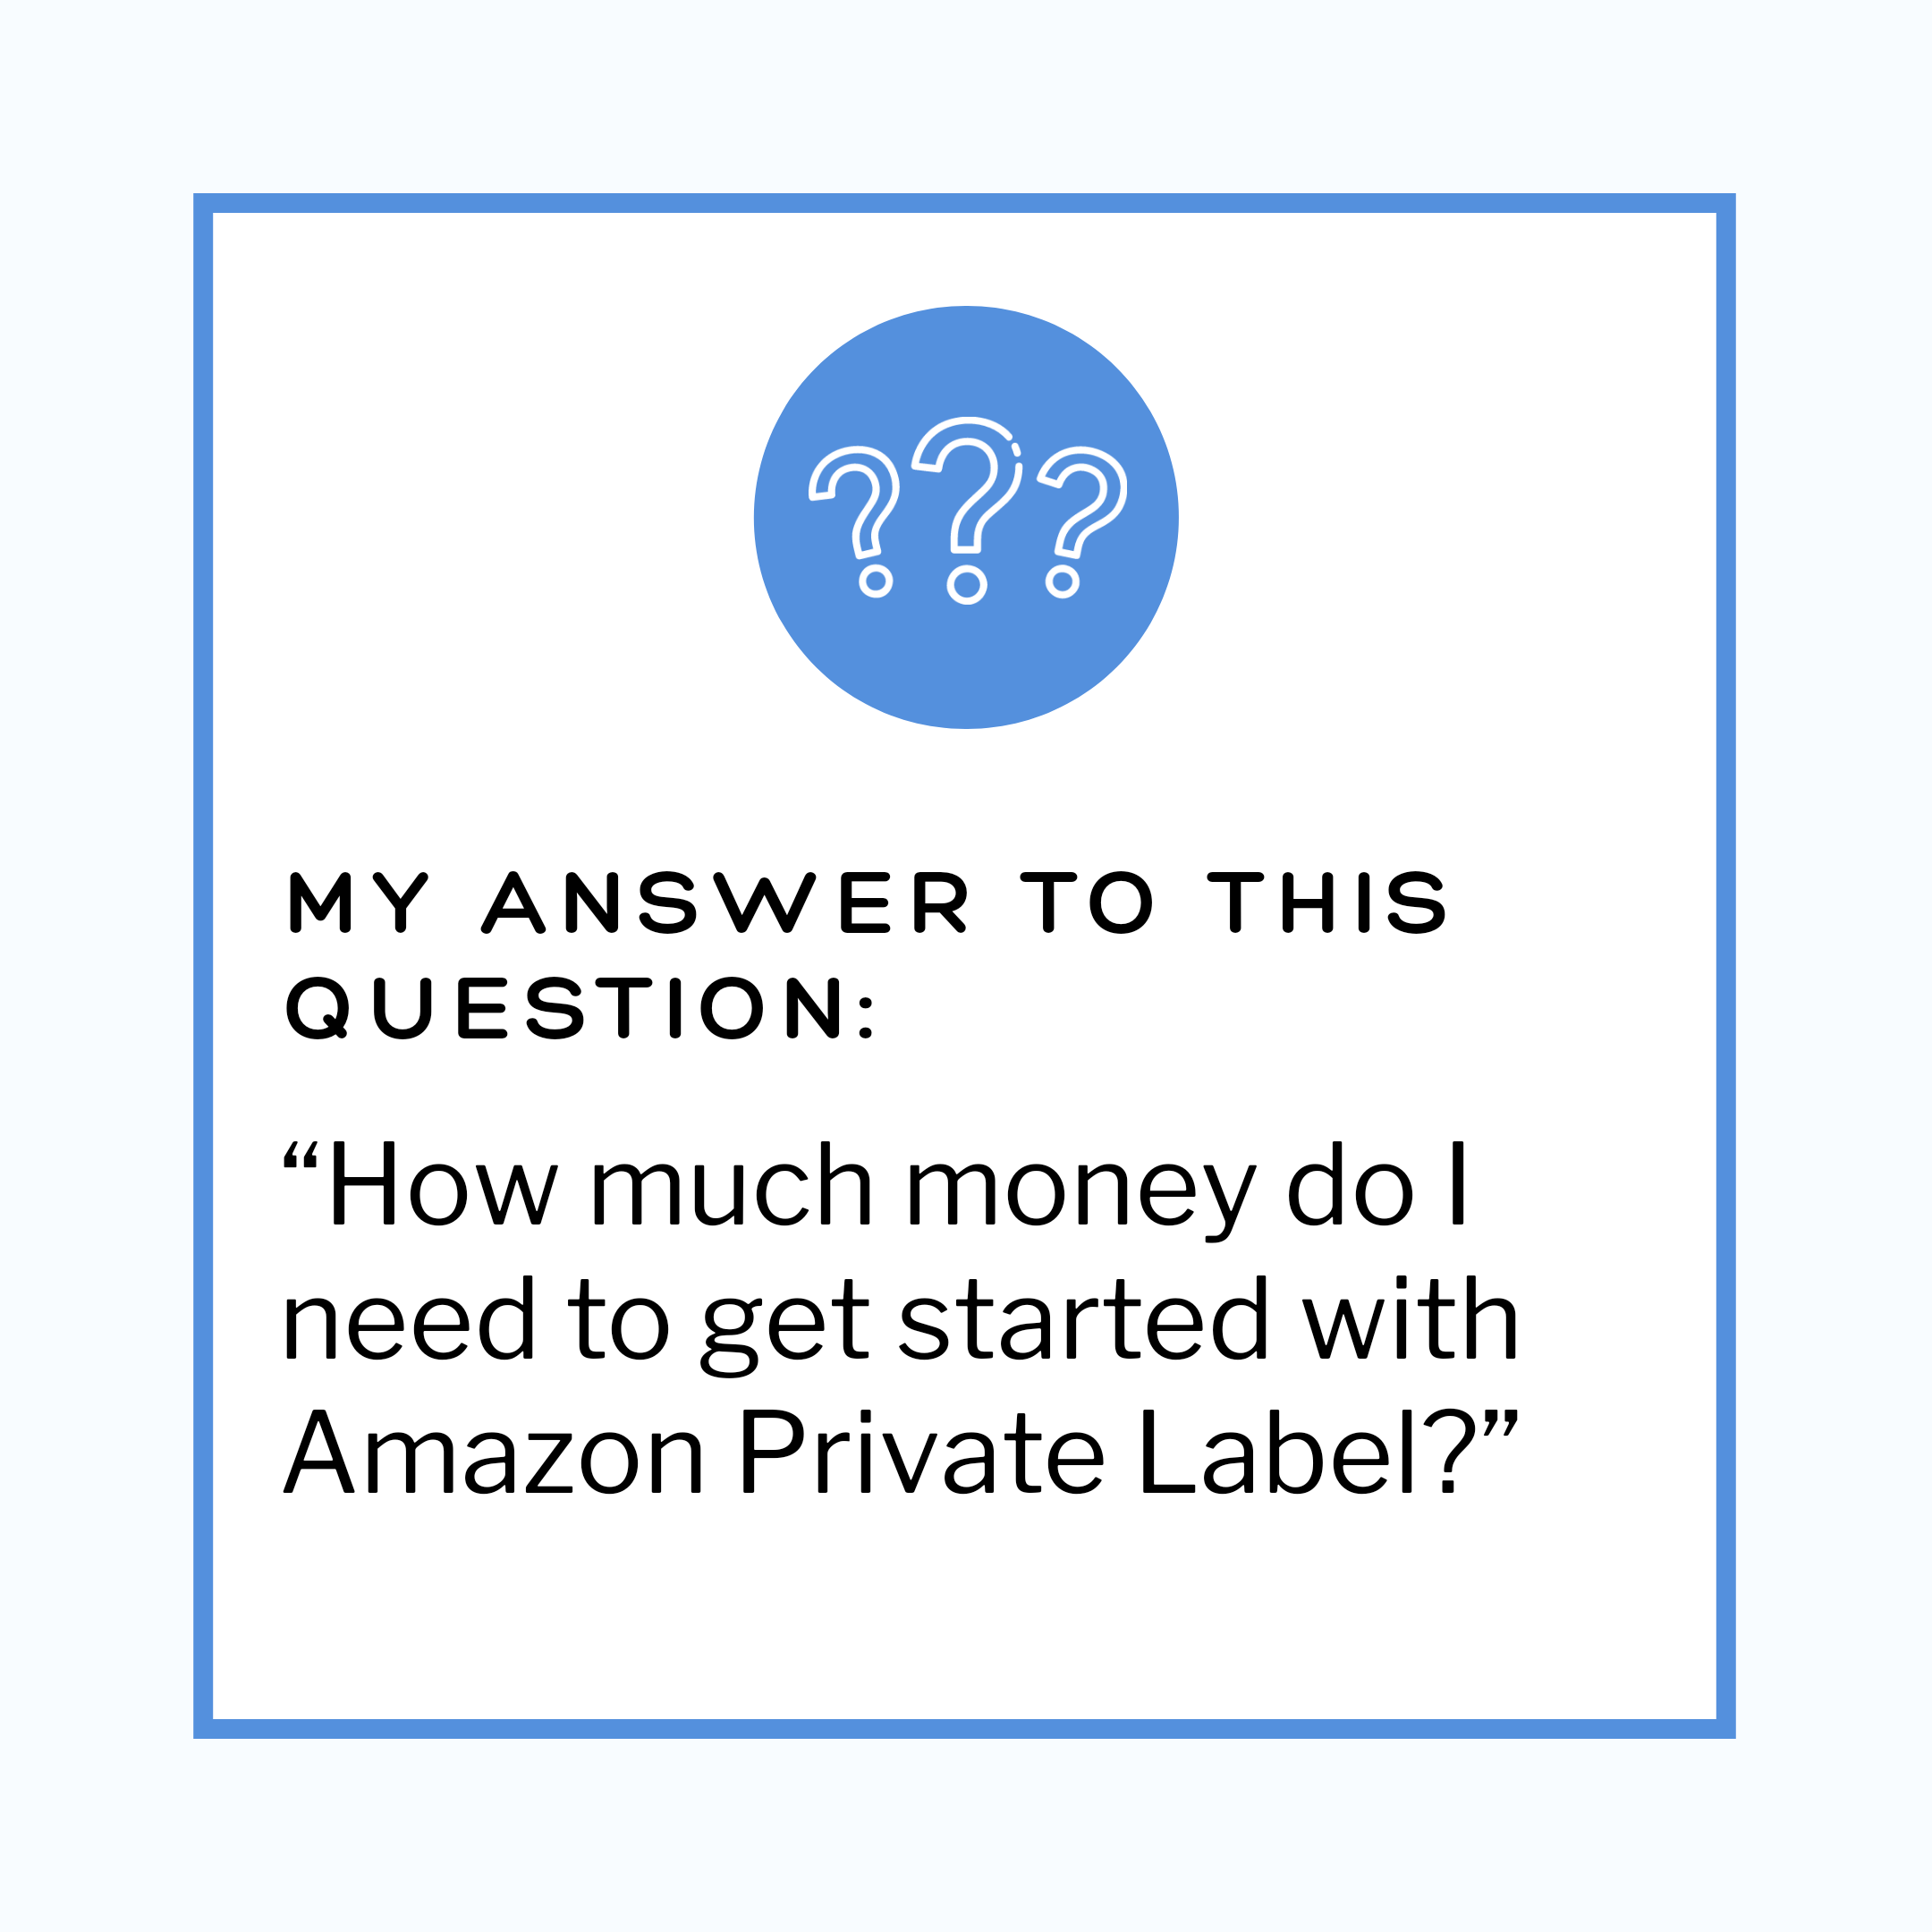 How Much Money Do I Need to Get Started With Amazon Private Label